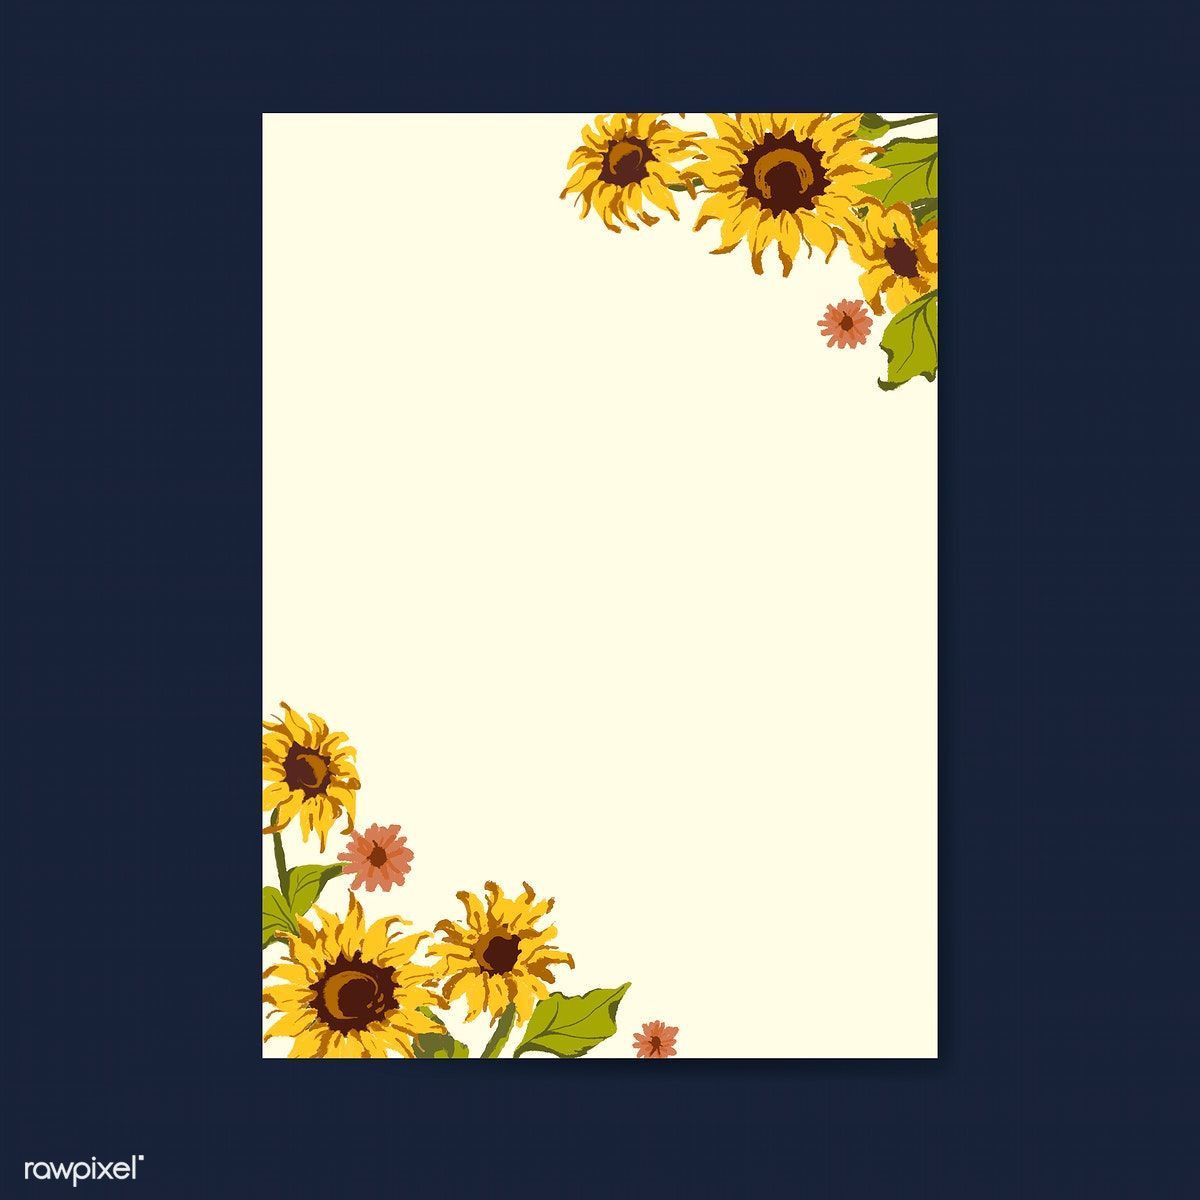 Blank Sunflower Invitation Card Mockup Vector Free Image By Rawpixel Com Sicha Sunflower Cards Sunflower Invitations Flower Cards